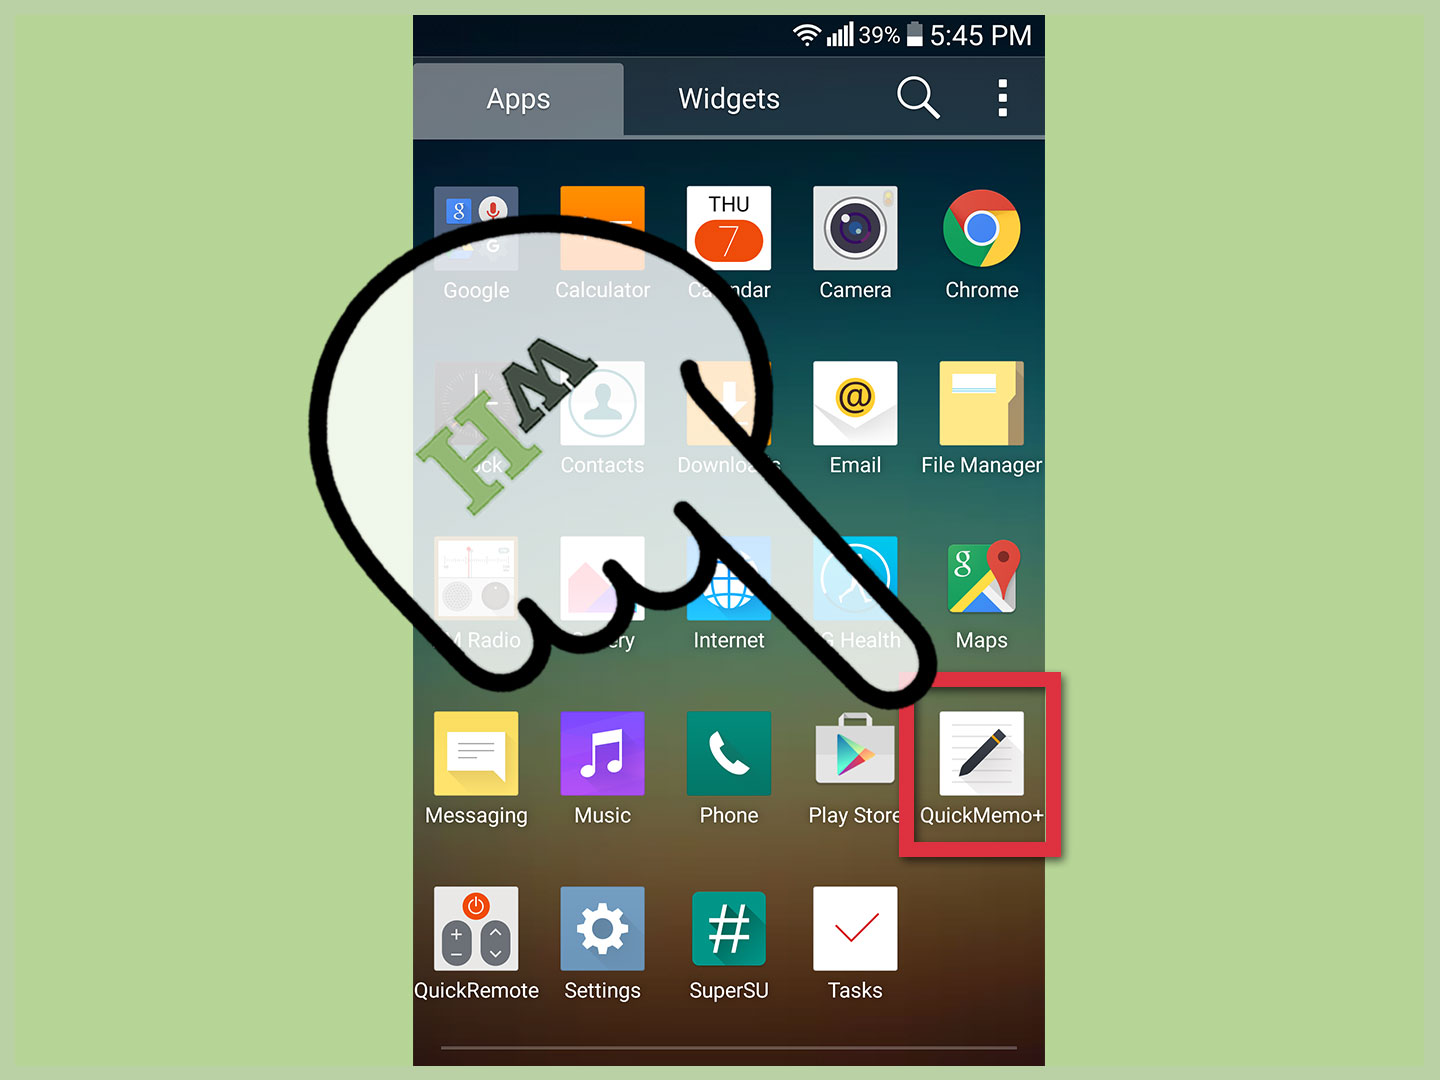 Come Fare uno Screenshot con un Telefono 4G LG Android